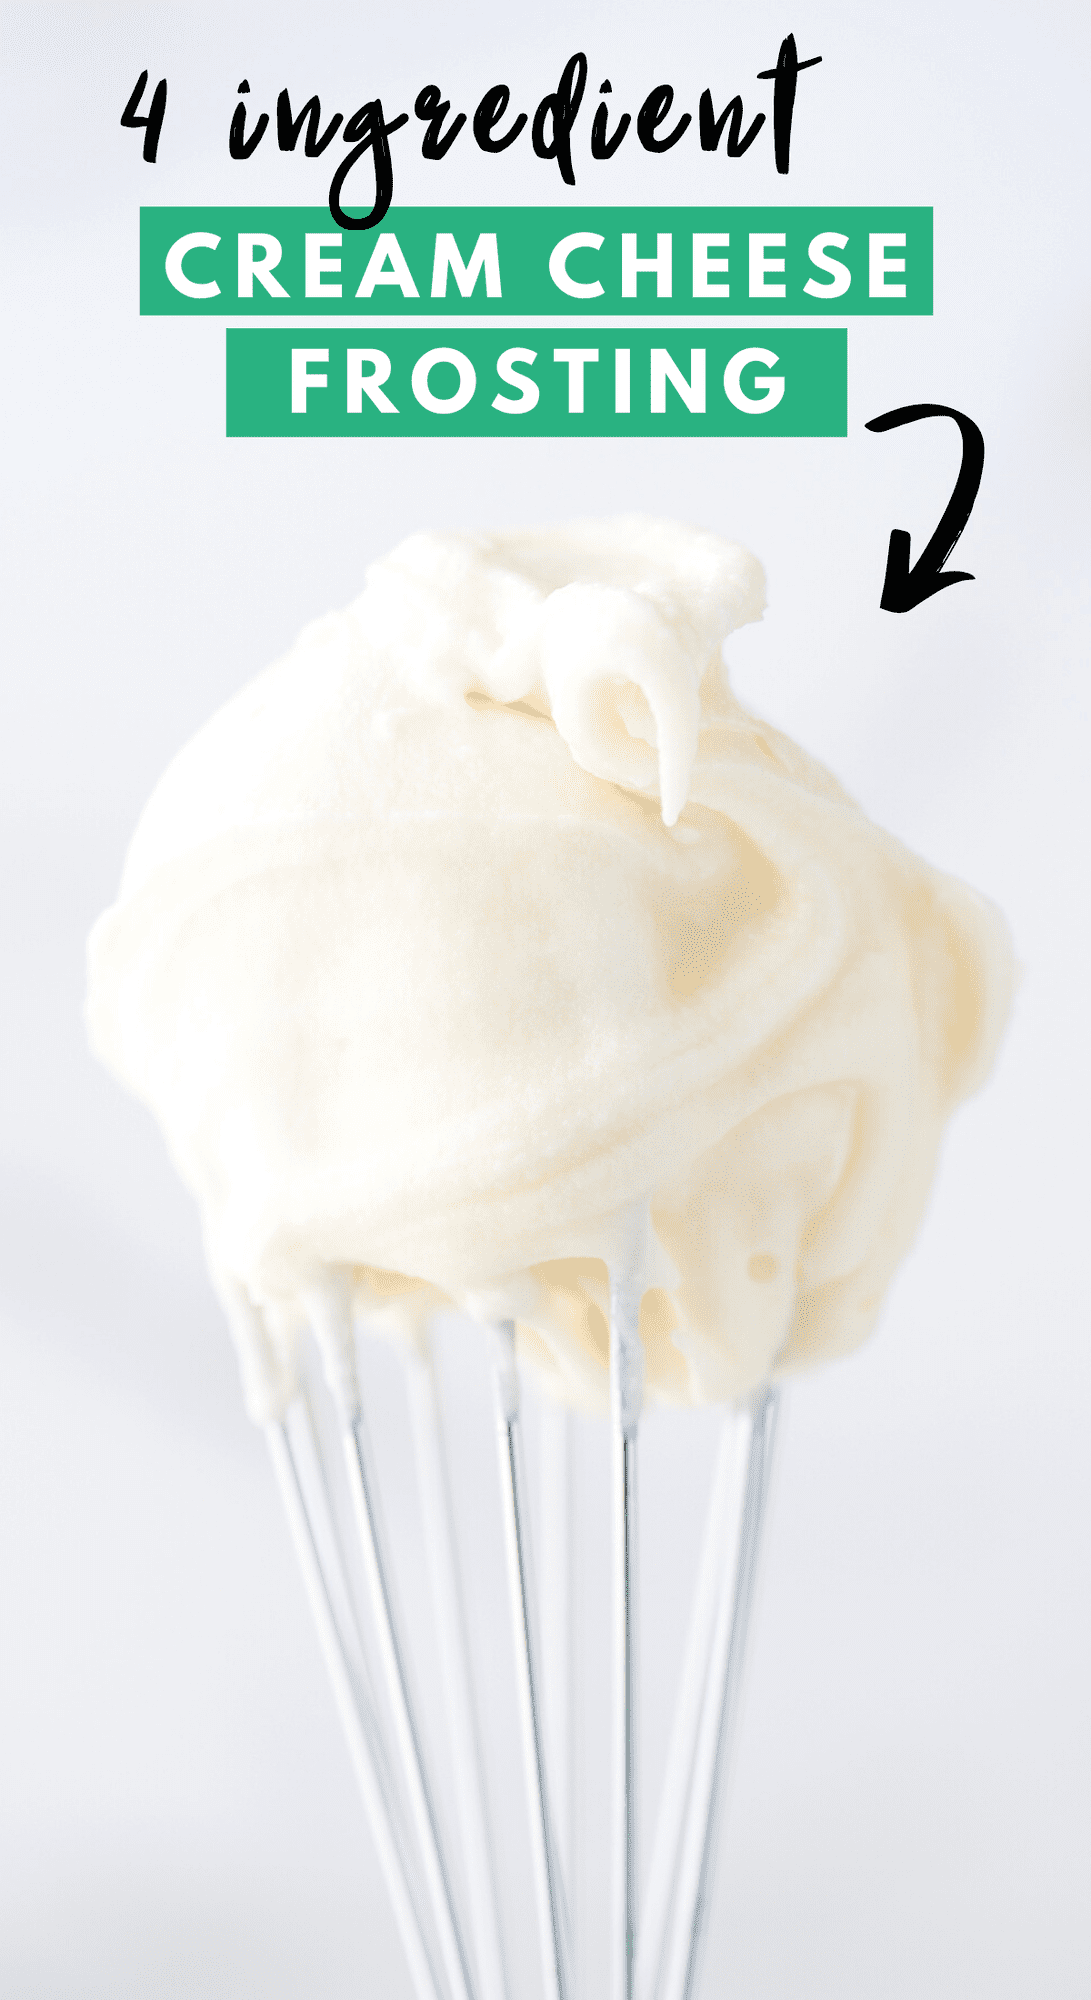 cream cheese frosting on wire whisk with text overlay